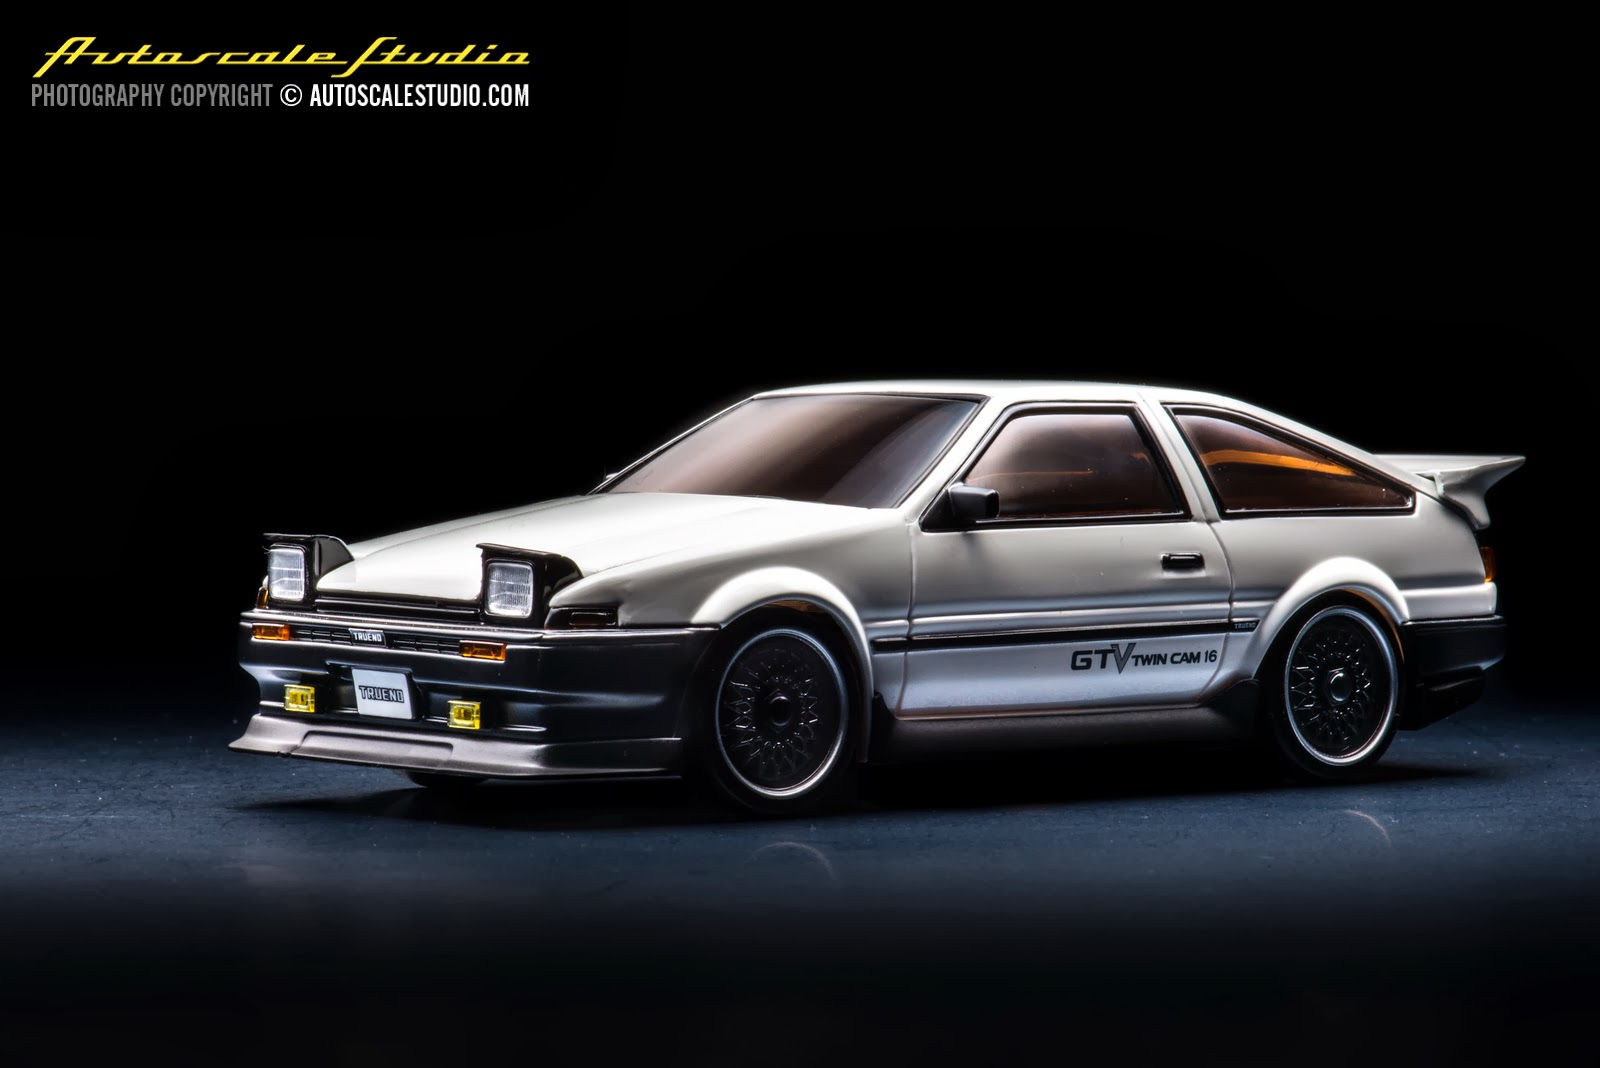 mzp410w toyota sprinter trueno ae86 aero version white autoscale studio. Black Bedroom Furniture Sets. Home Design Ideas